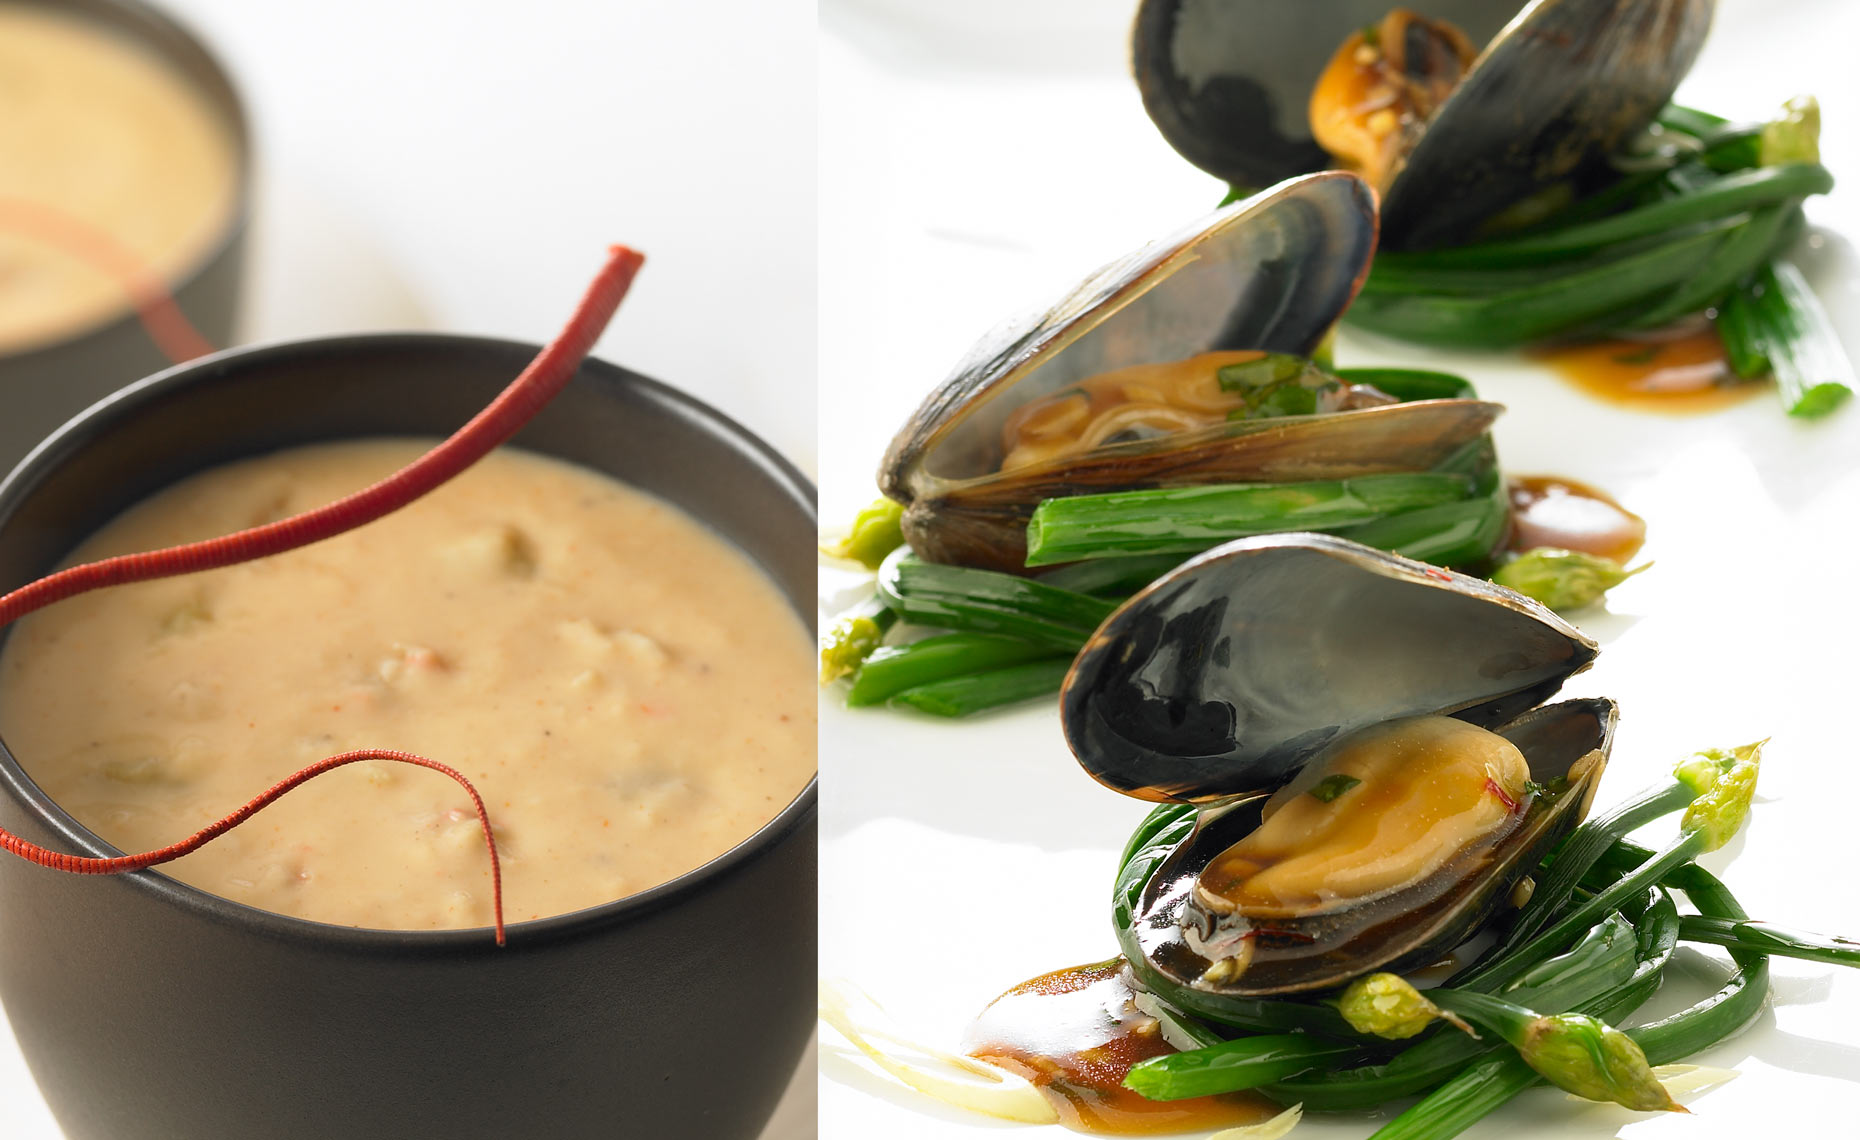 appetizers-fruits-vegetables-photographers-bisque-mussels-11